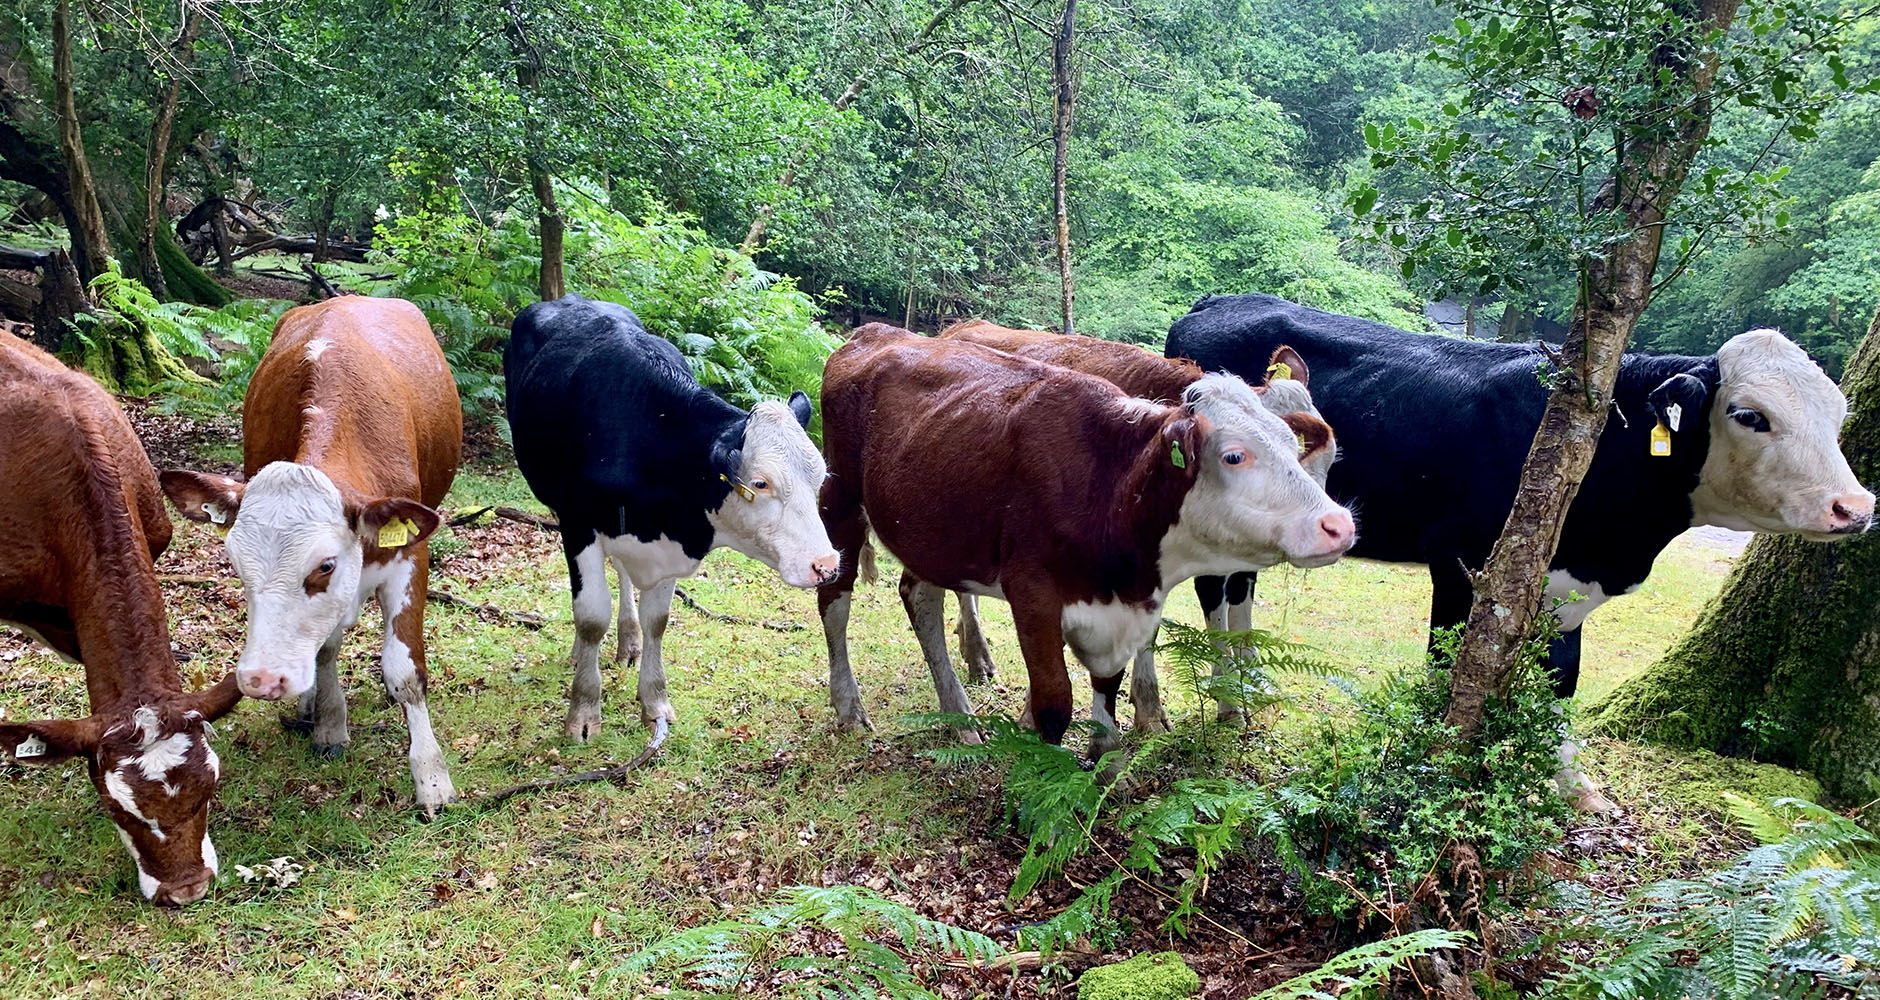 Tom's cattle living their best lives in the forest